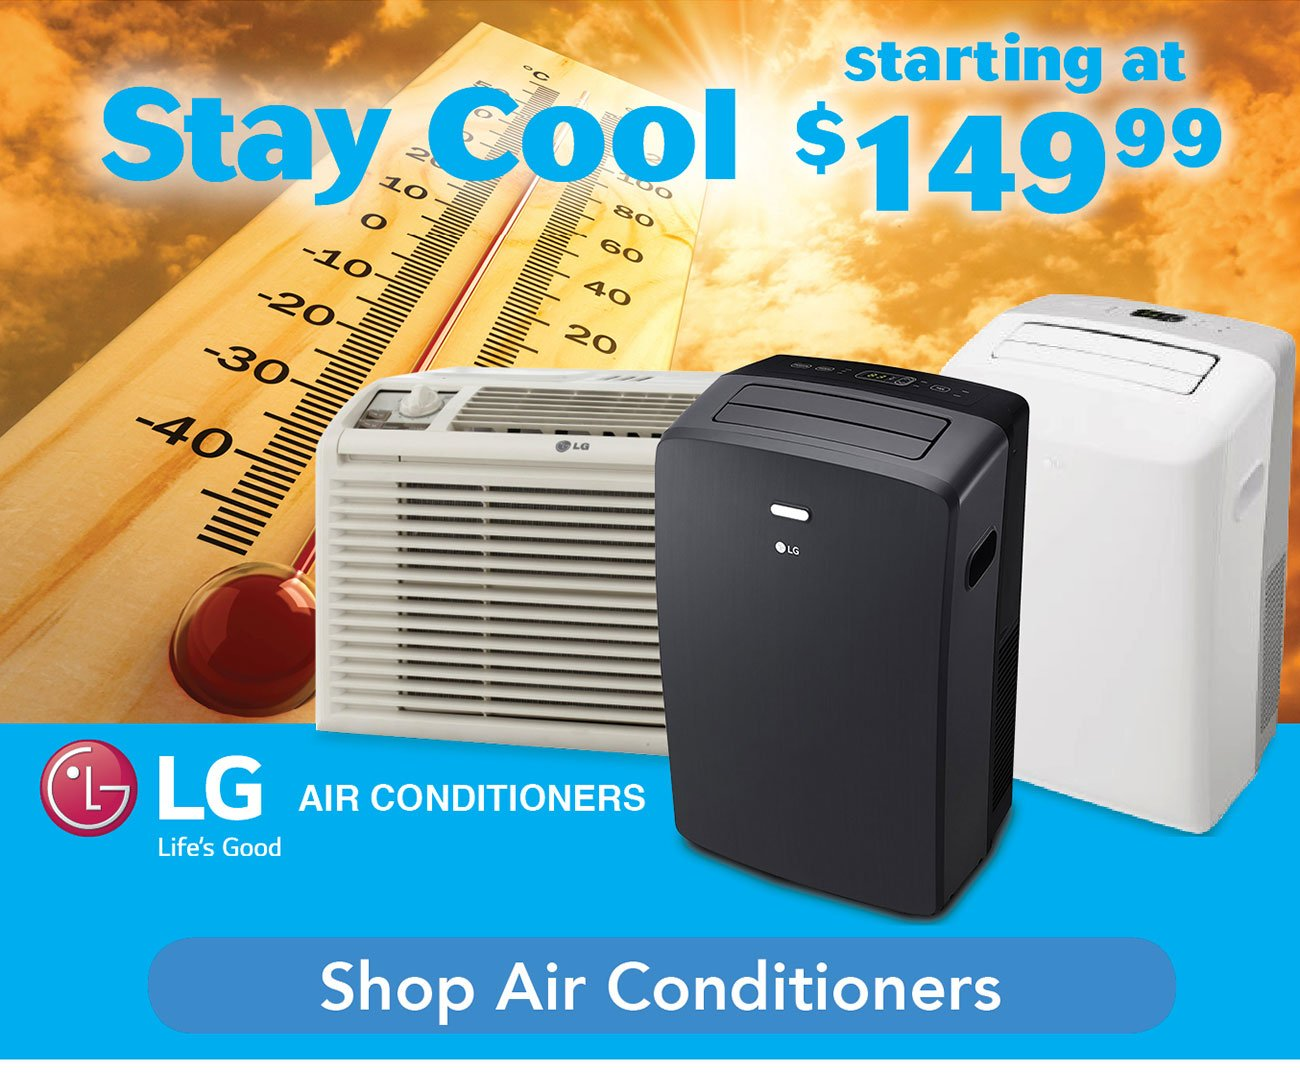 LG-air-conditioners